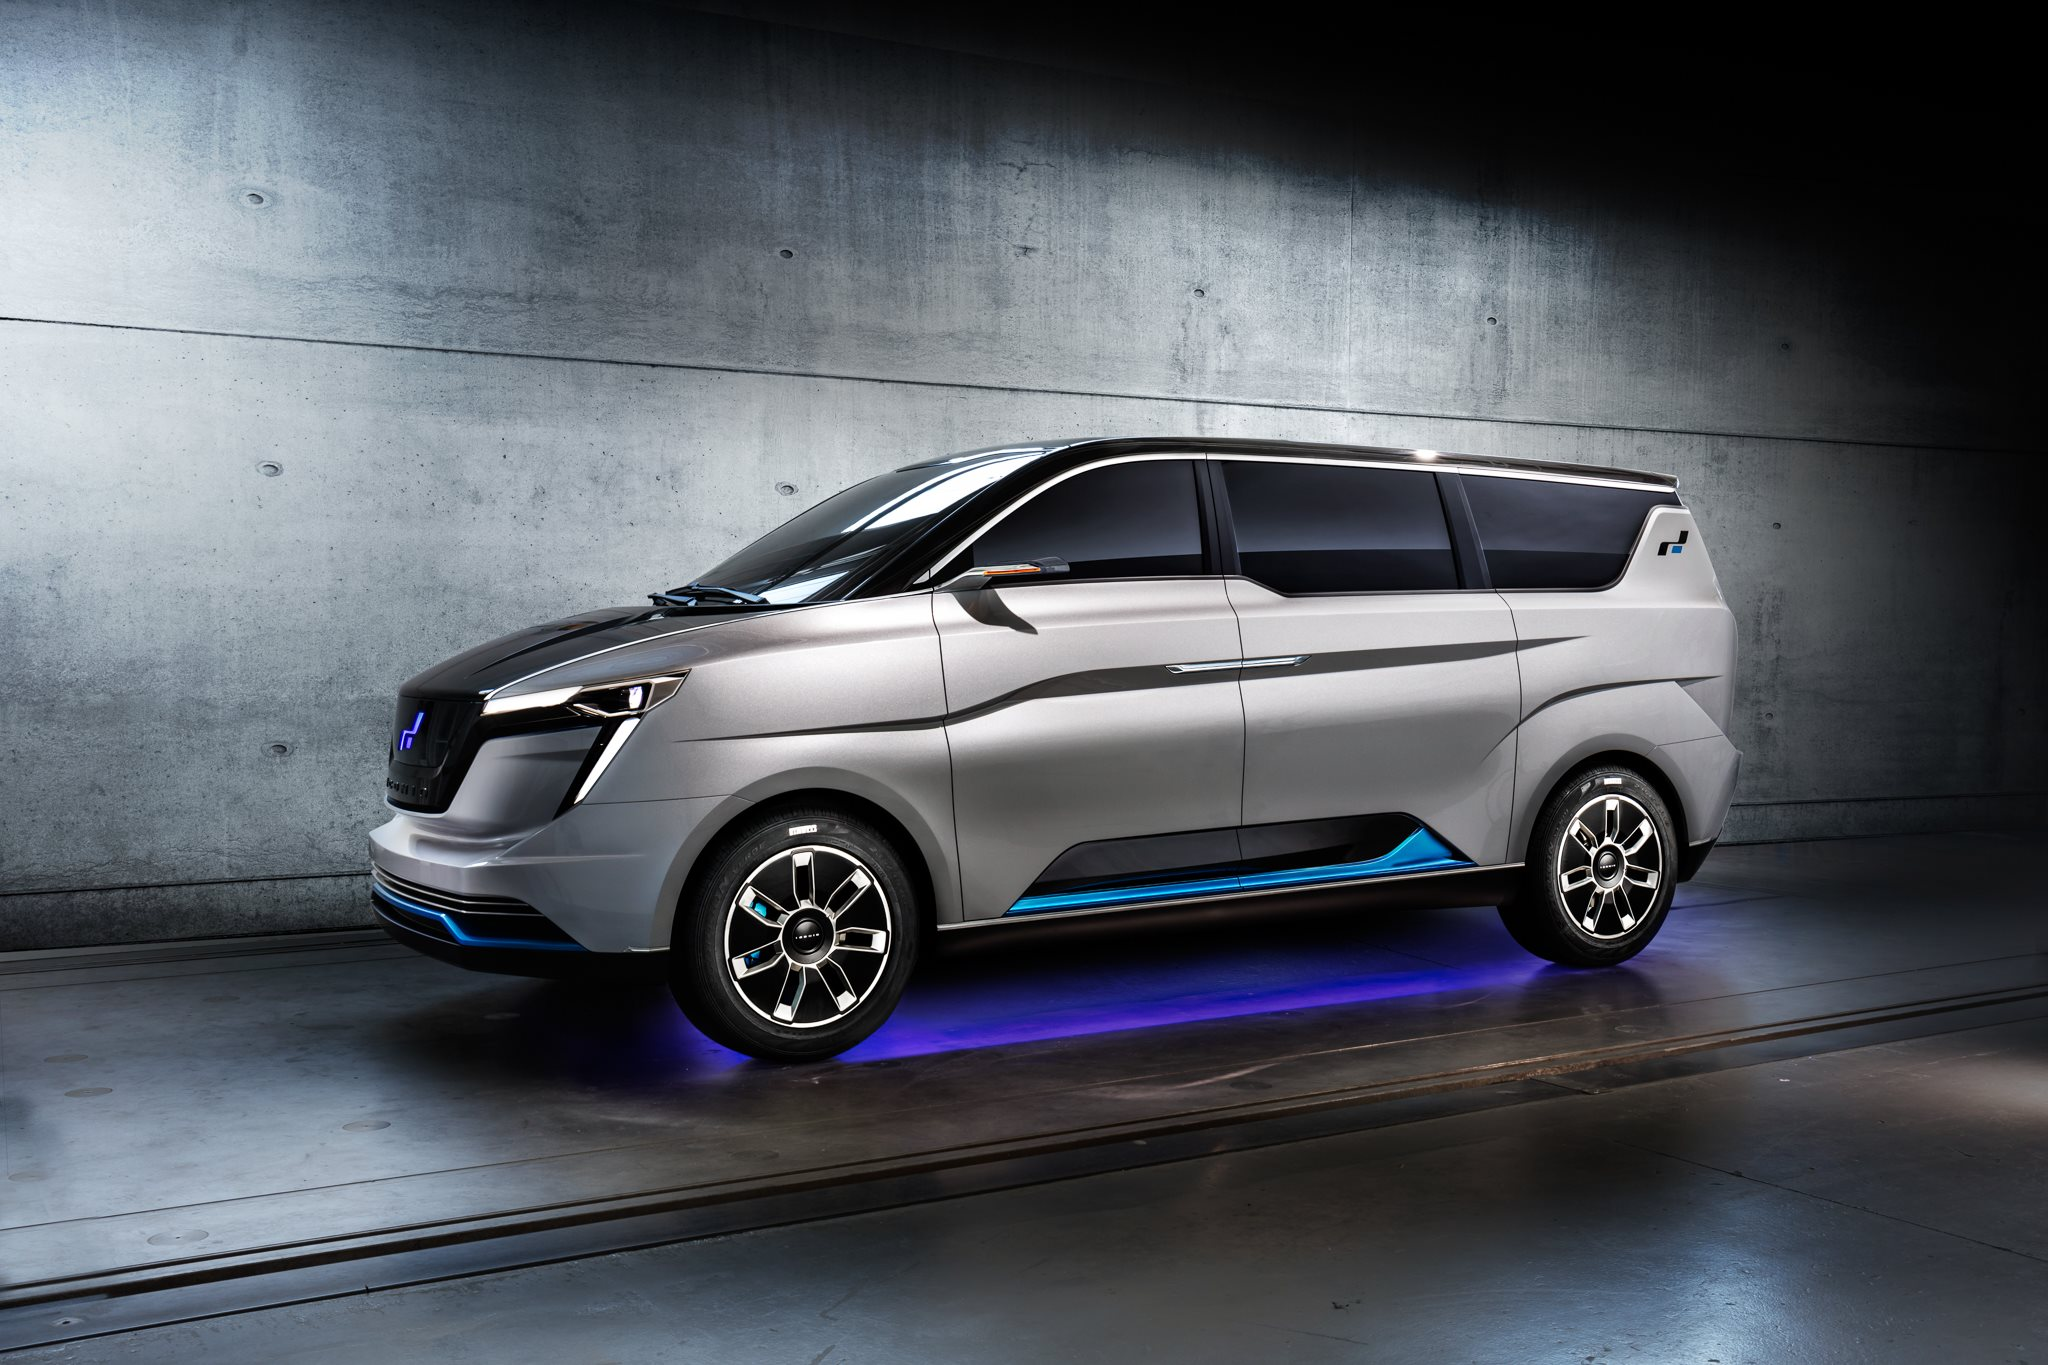 Iconiq Seven Designed By W Motors Is Not A Hyundai